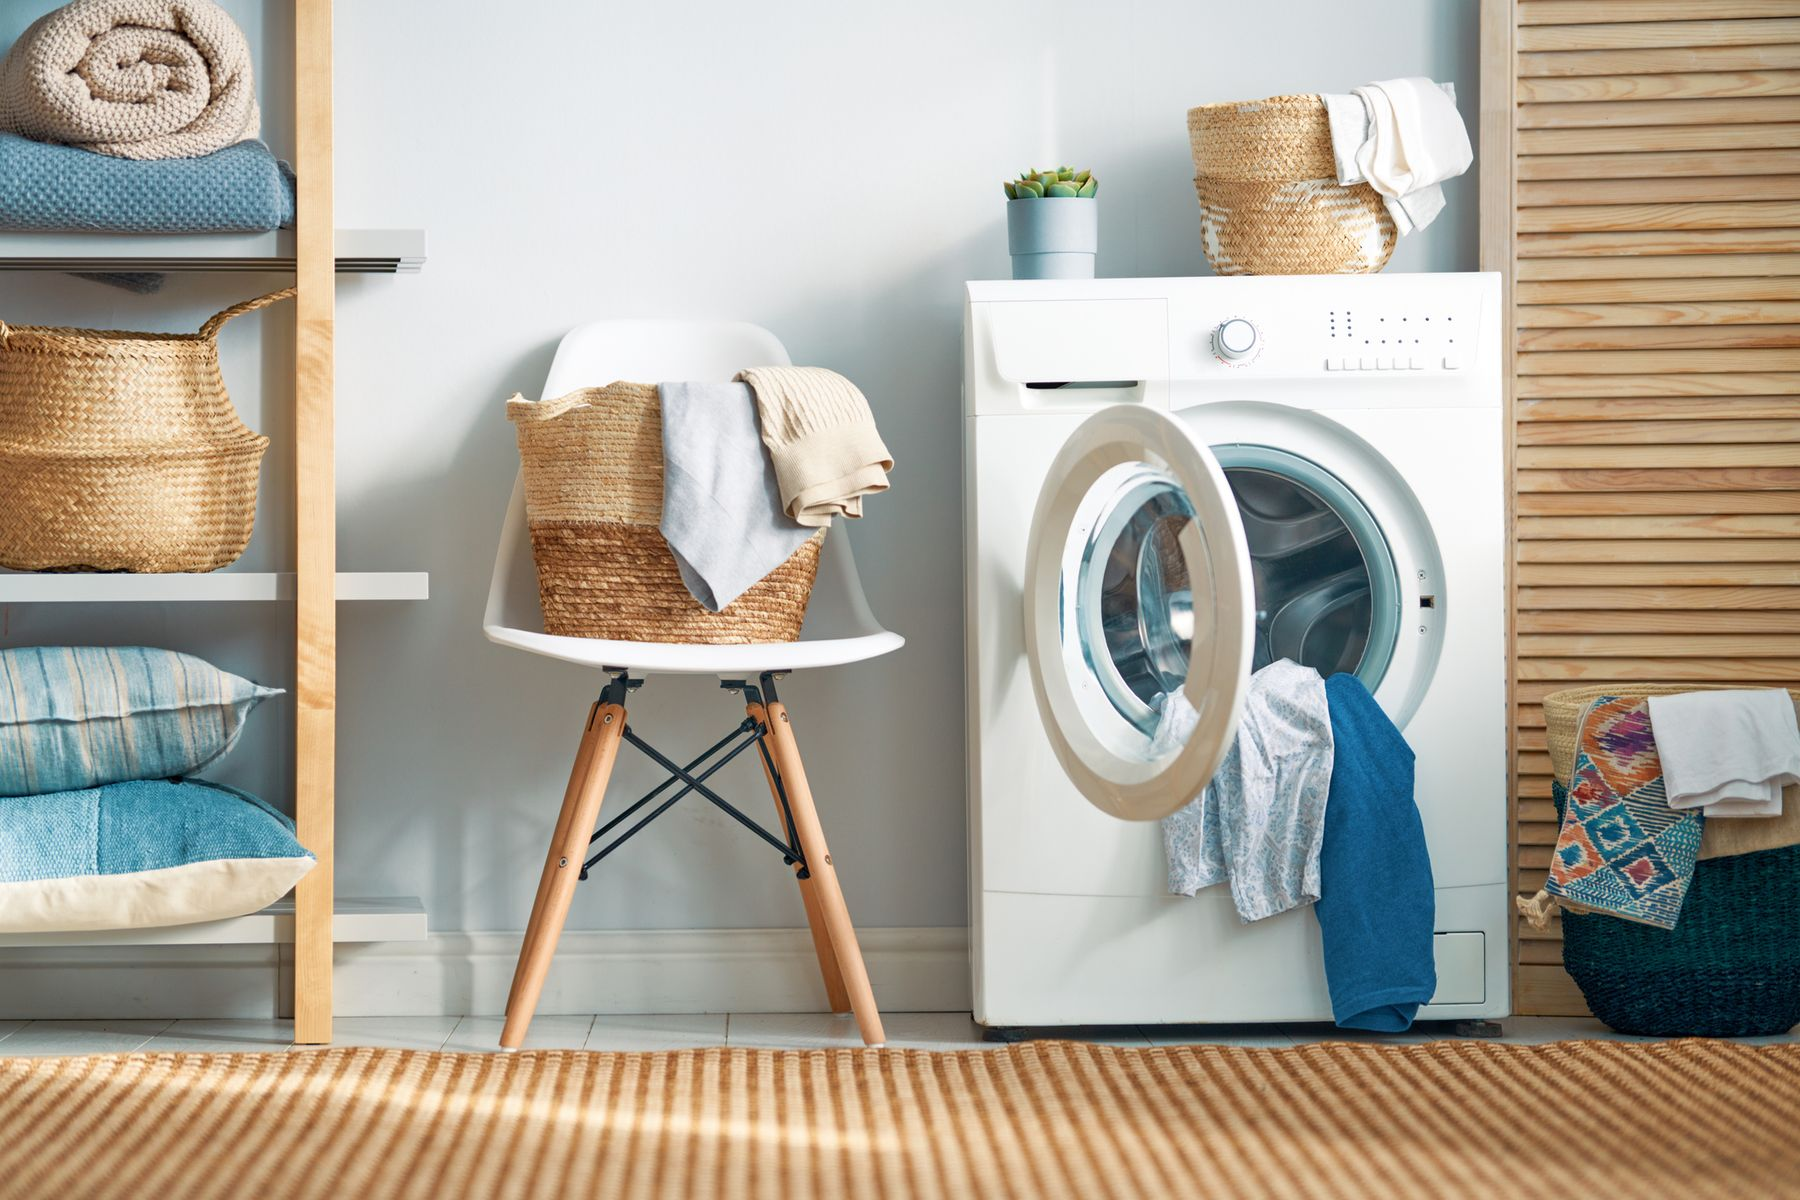 Open tumble dryer with clothes, beside a basket of clothes on a chair in a laundry room